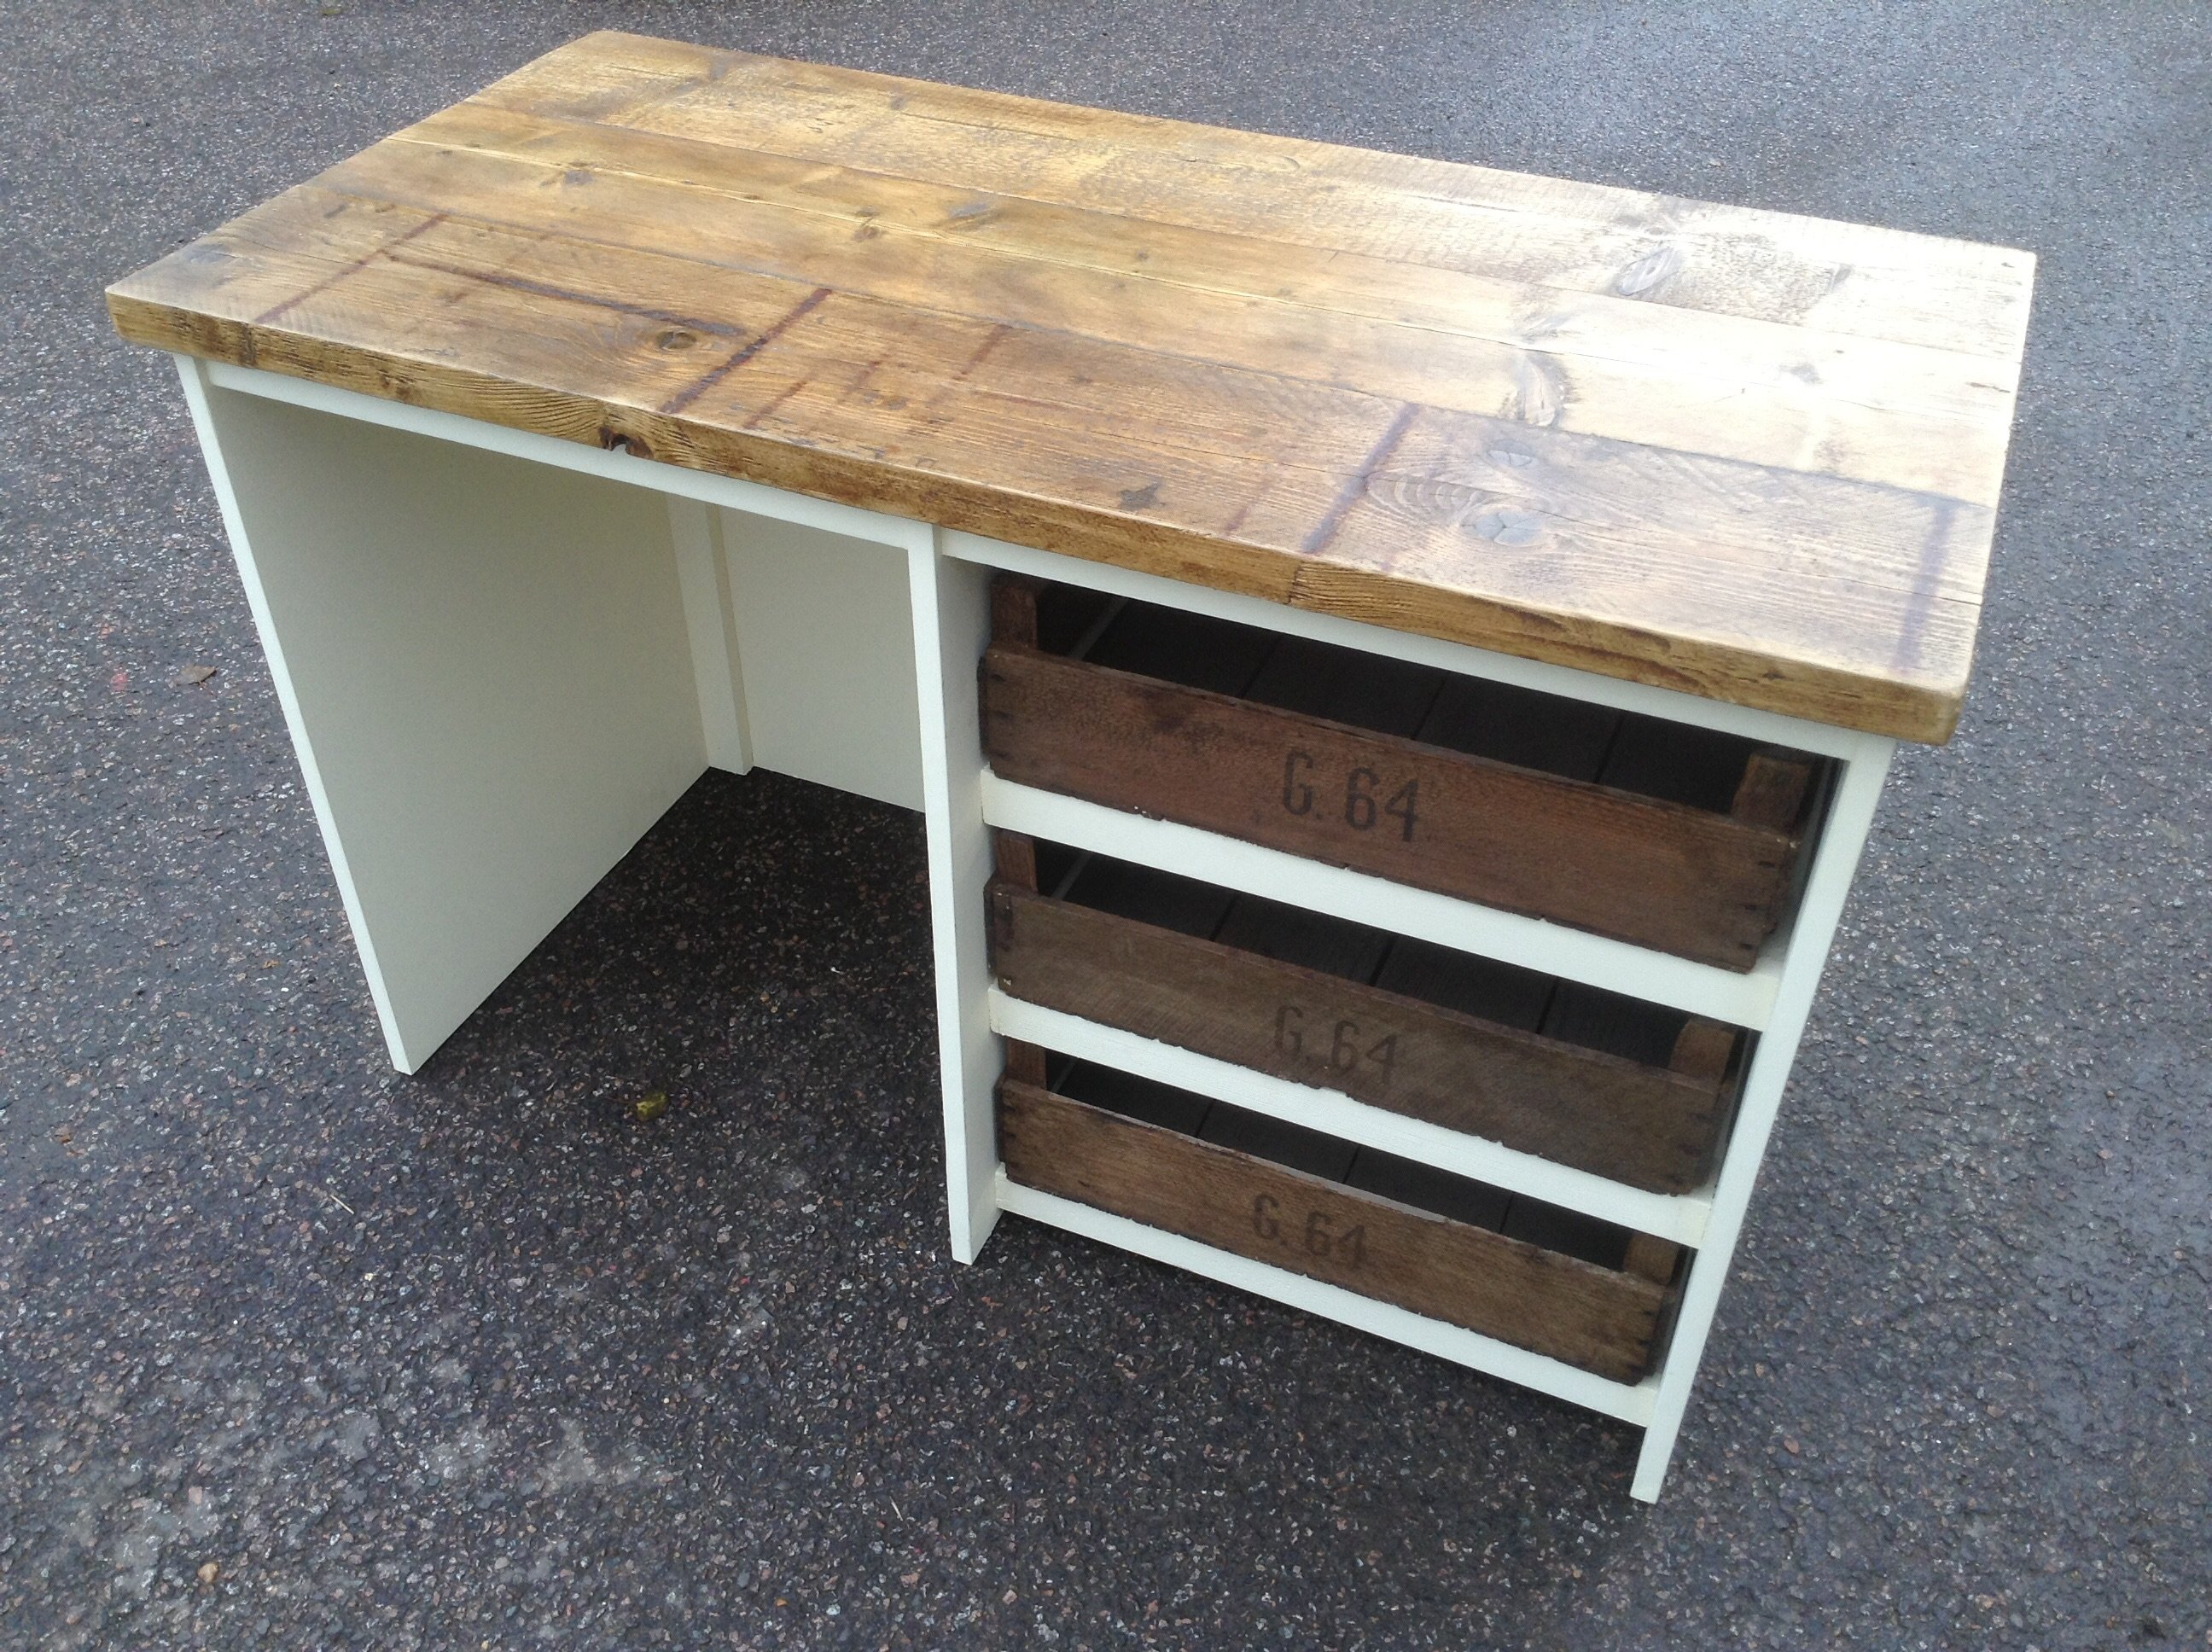 table with compartments